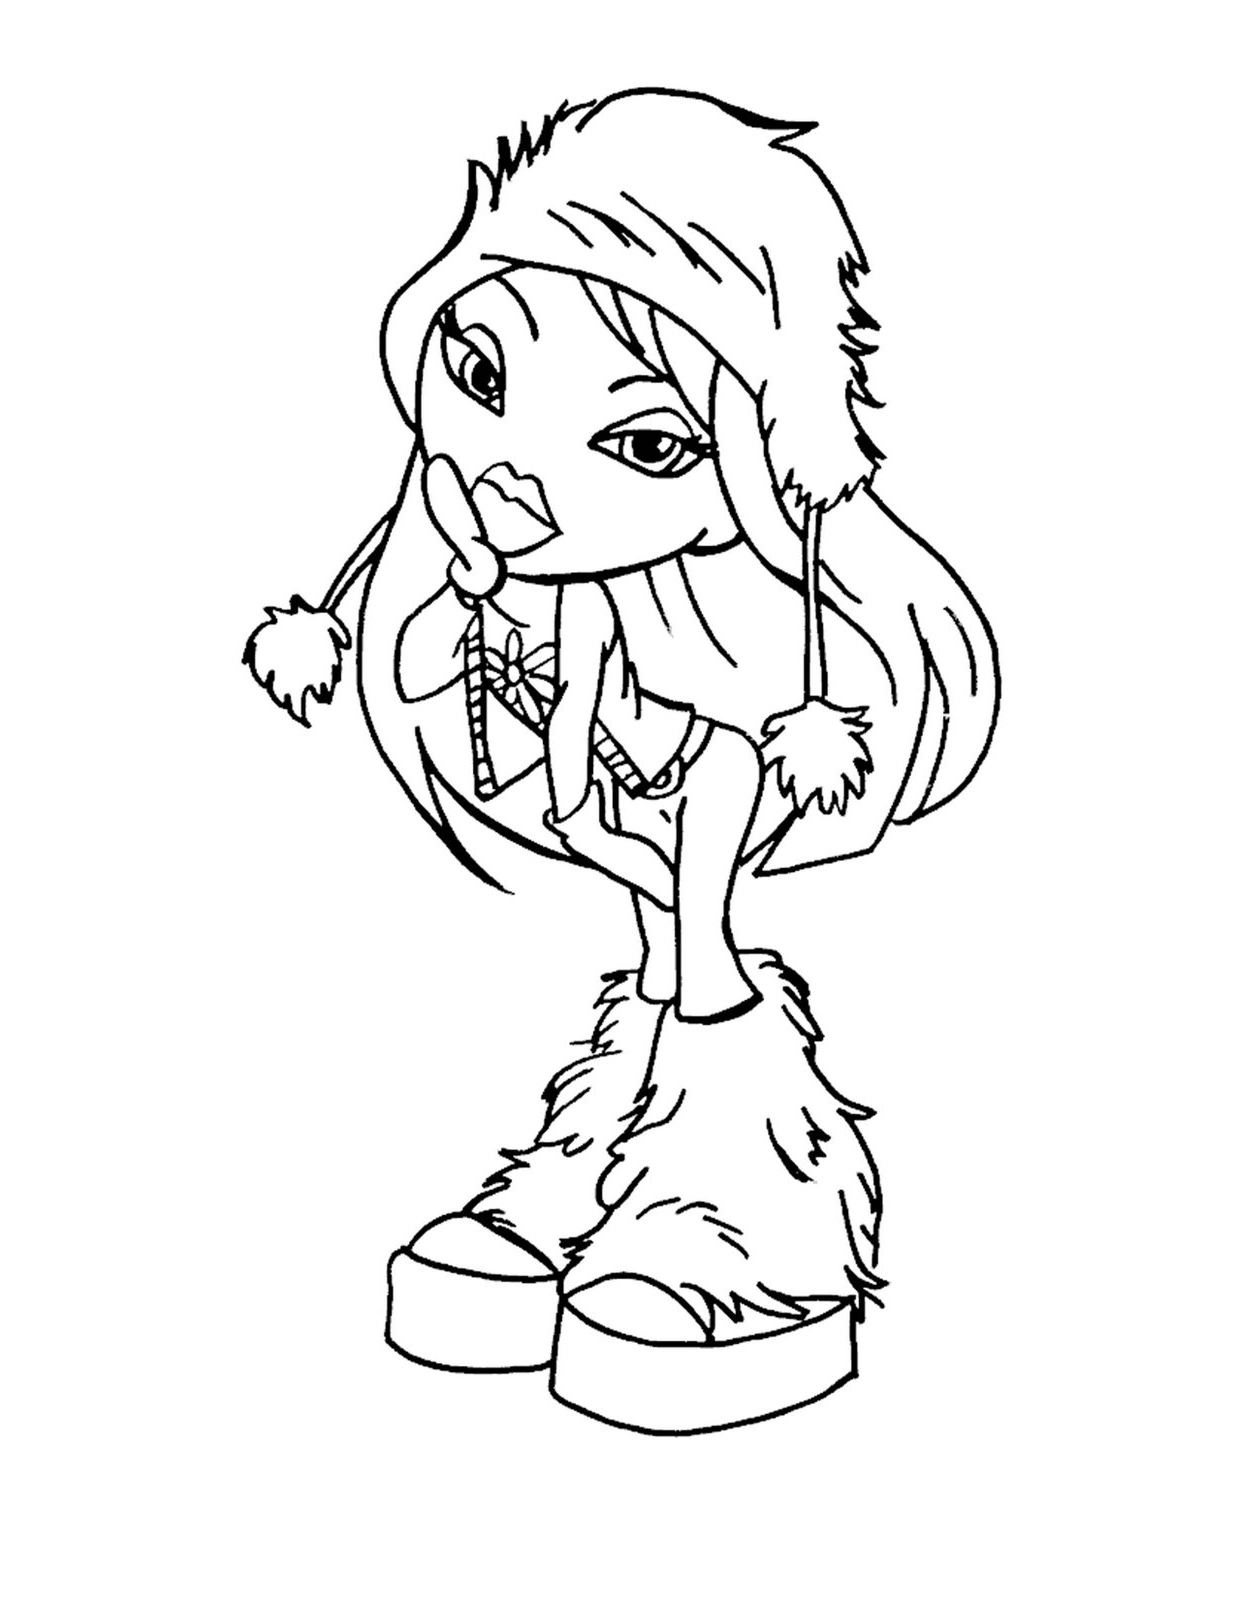 The bratz coloring pages printable - Printable Bratz Coloring Pages Coloring Me Free Bratz Coloring Pages Printable Bratz Coloring Pagesphp